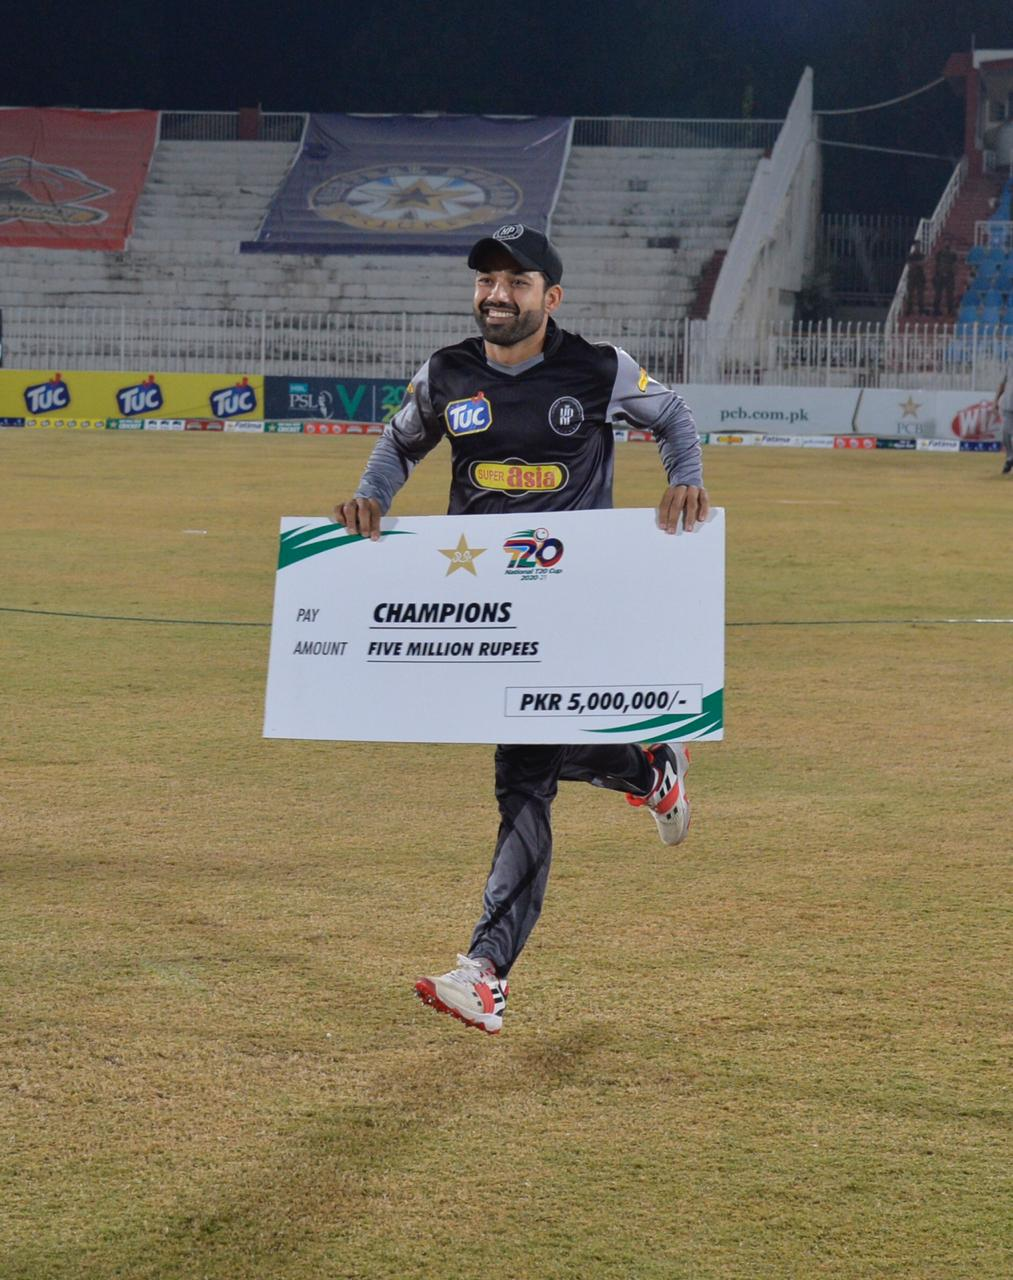 Mohammad Rizwan blooms in commanding KPK, Is this the end to Sarfaraz's international career?